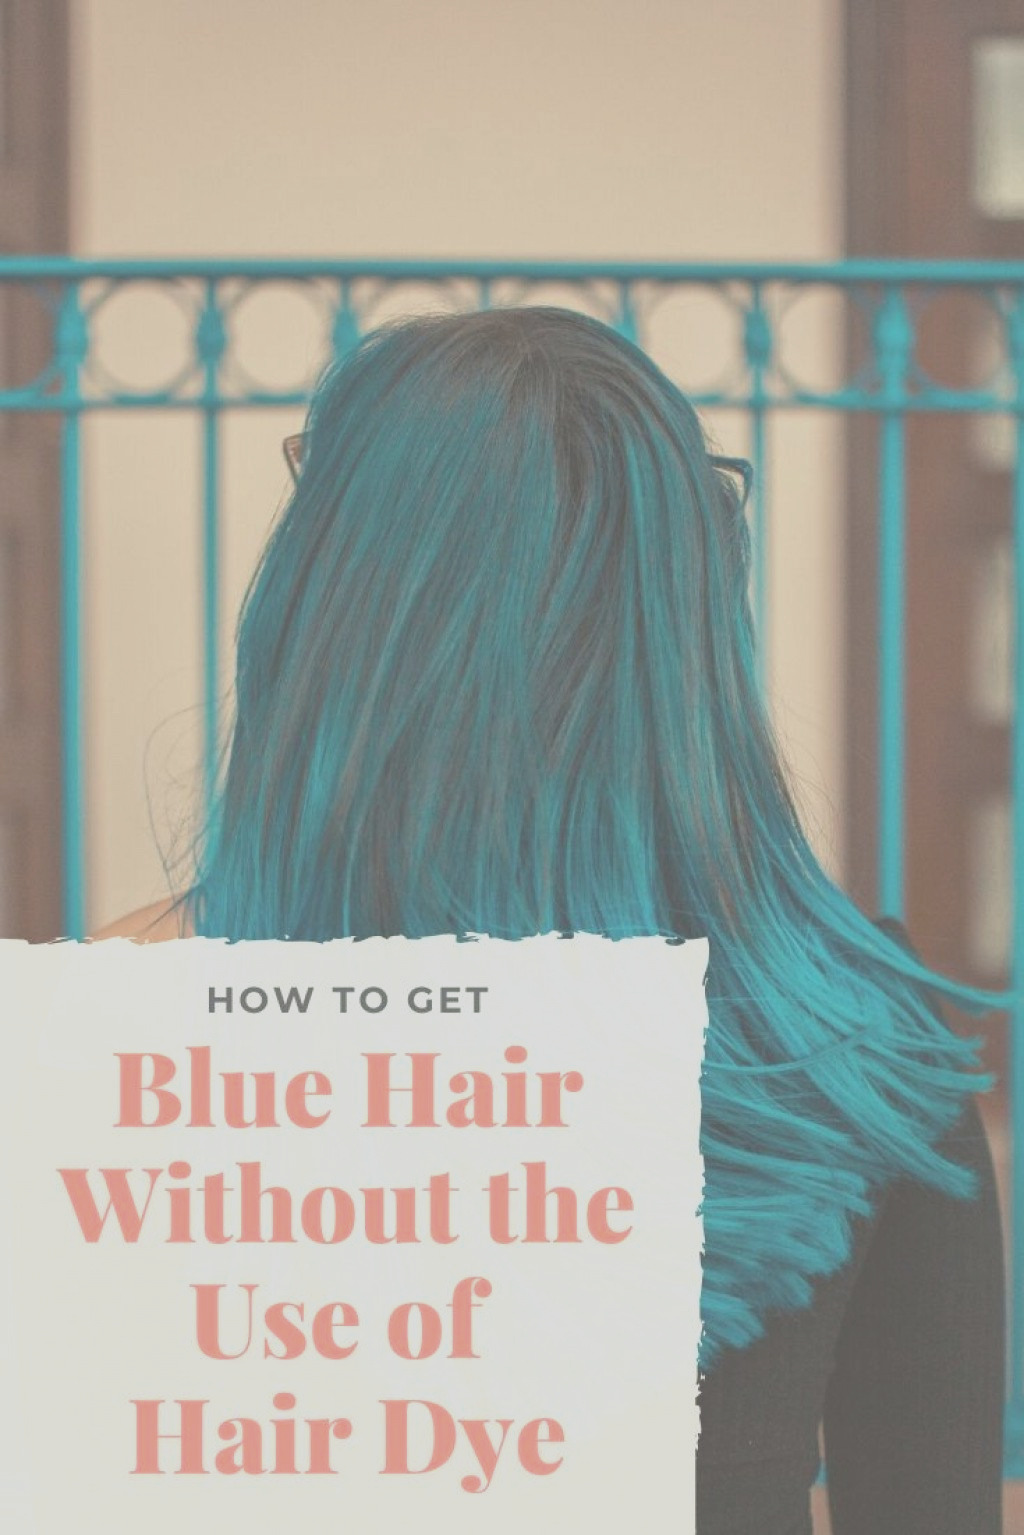 How to dye your hair blue naturally at home